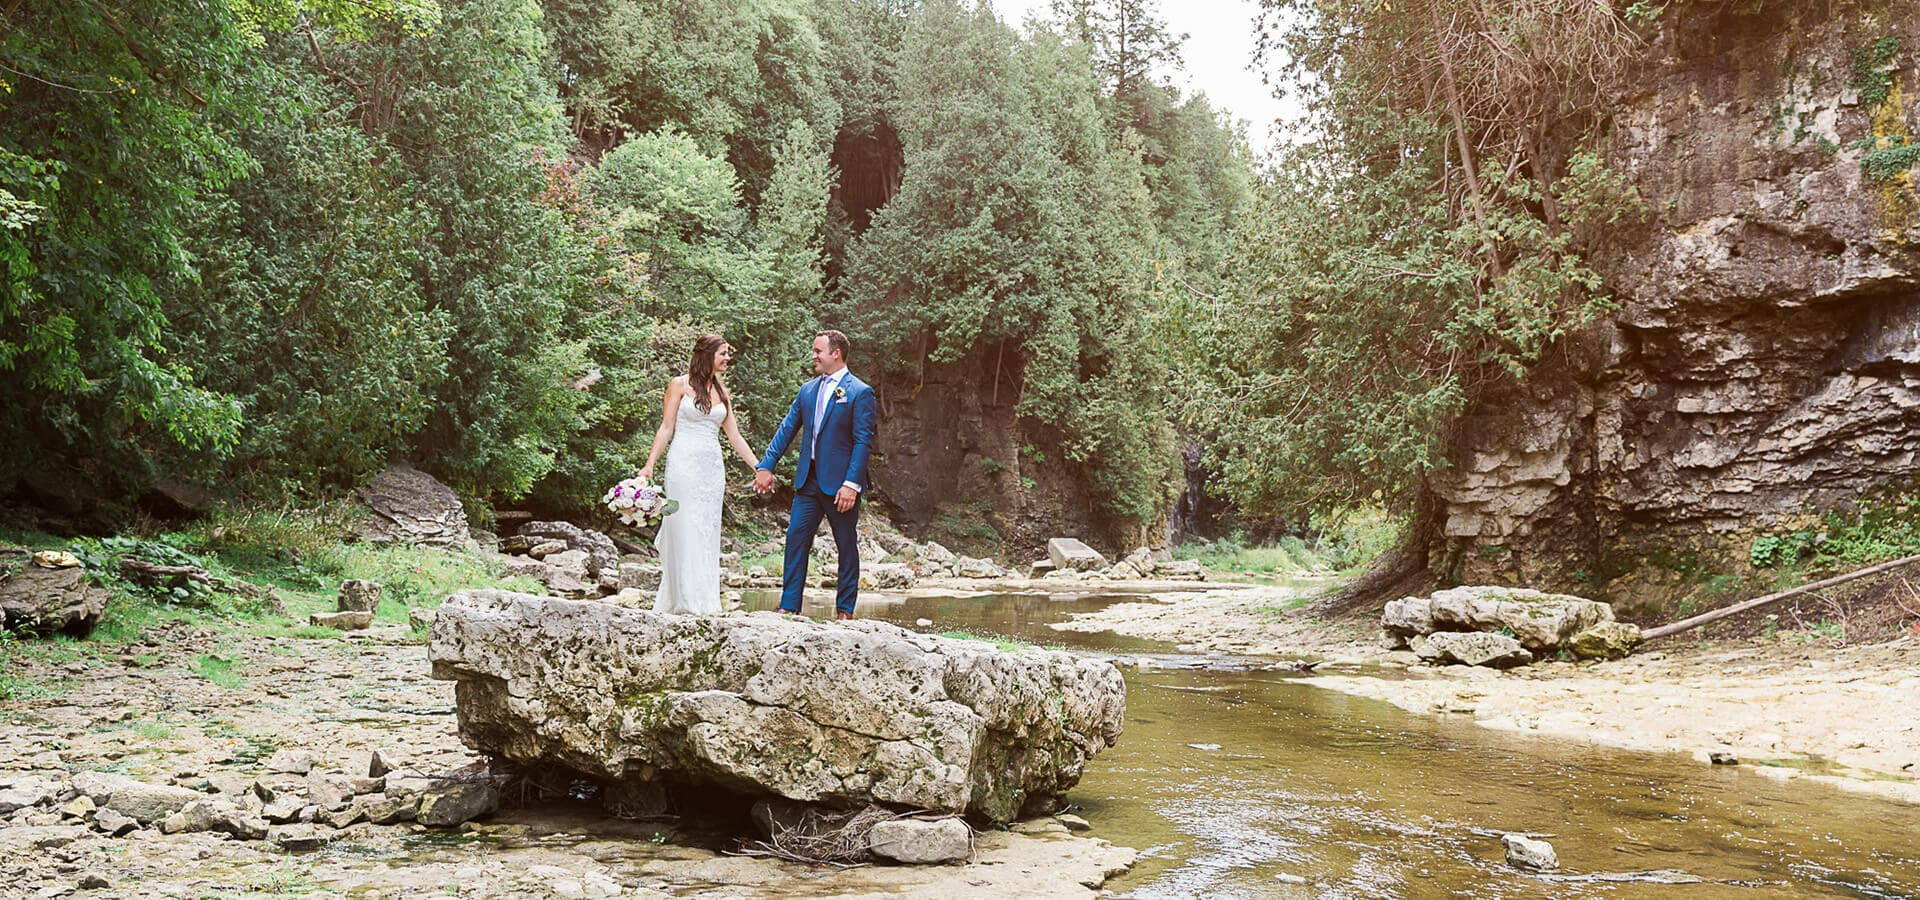 Hero image for 6 Great Reasons to Look Forward to a Summer Wedding